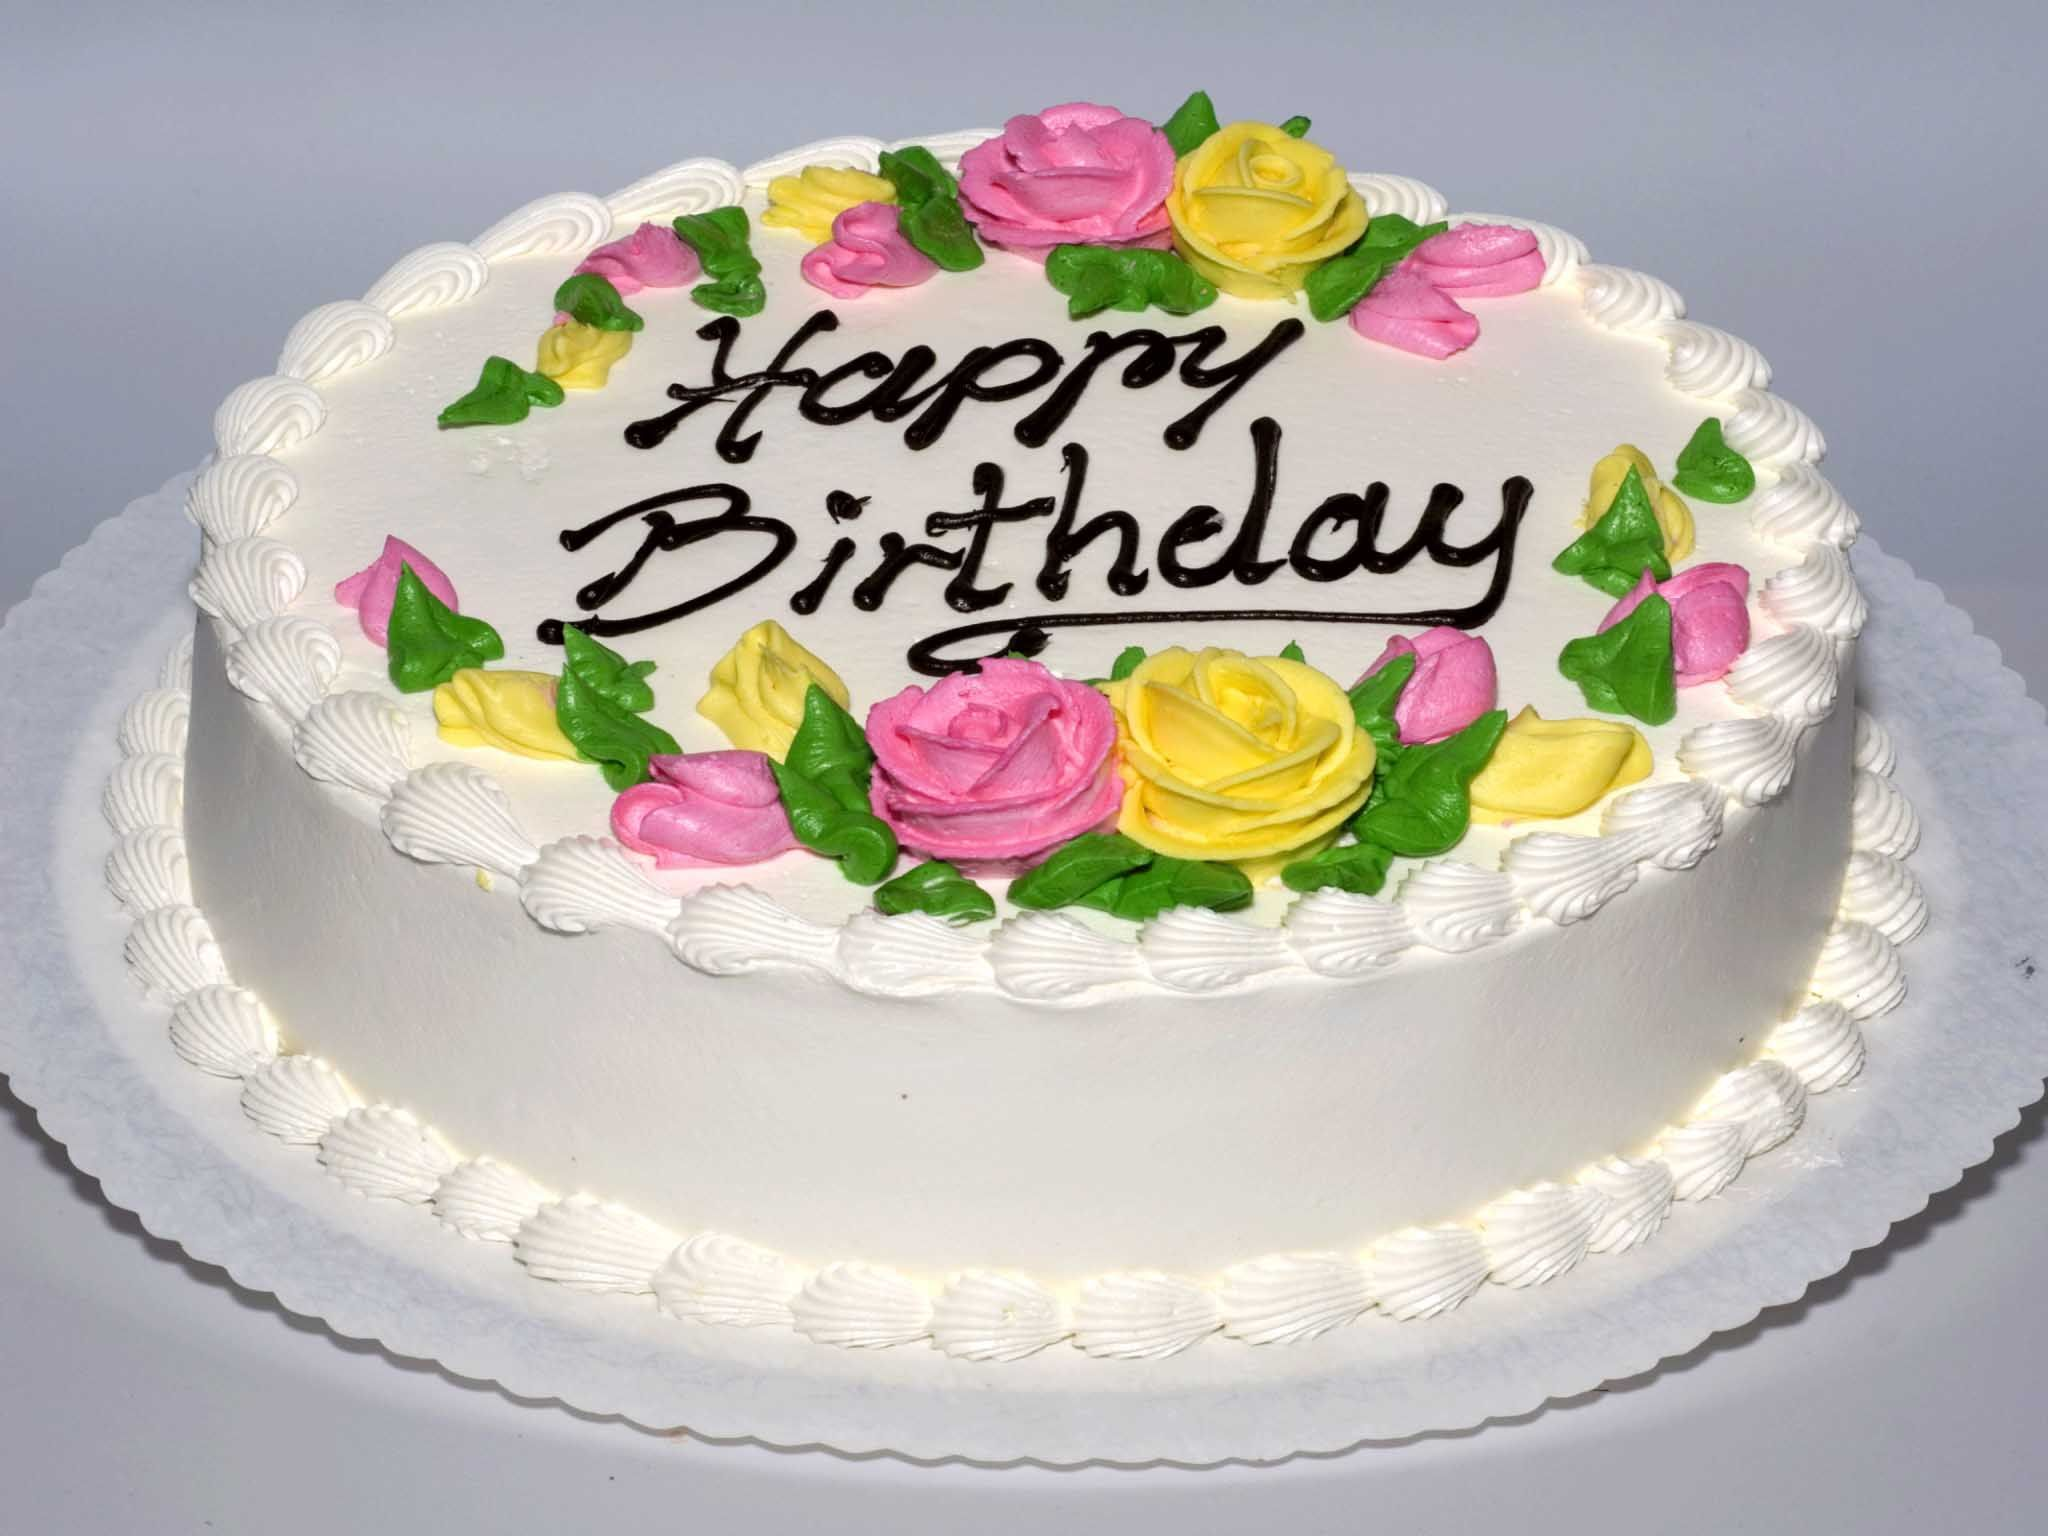 Happy Birthdbay Cake Images Morning Greetings Quotes Pinterest